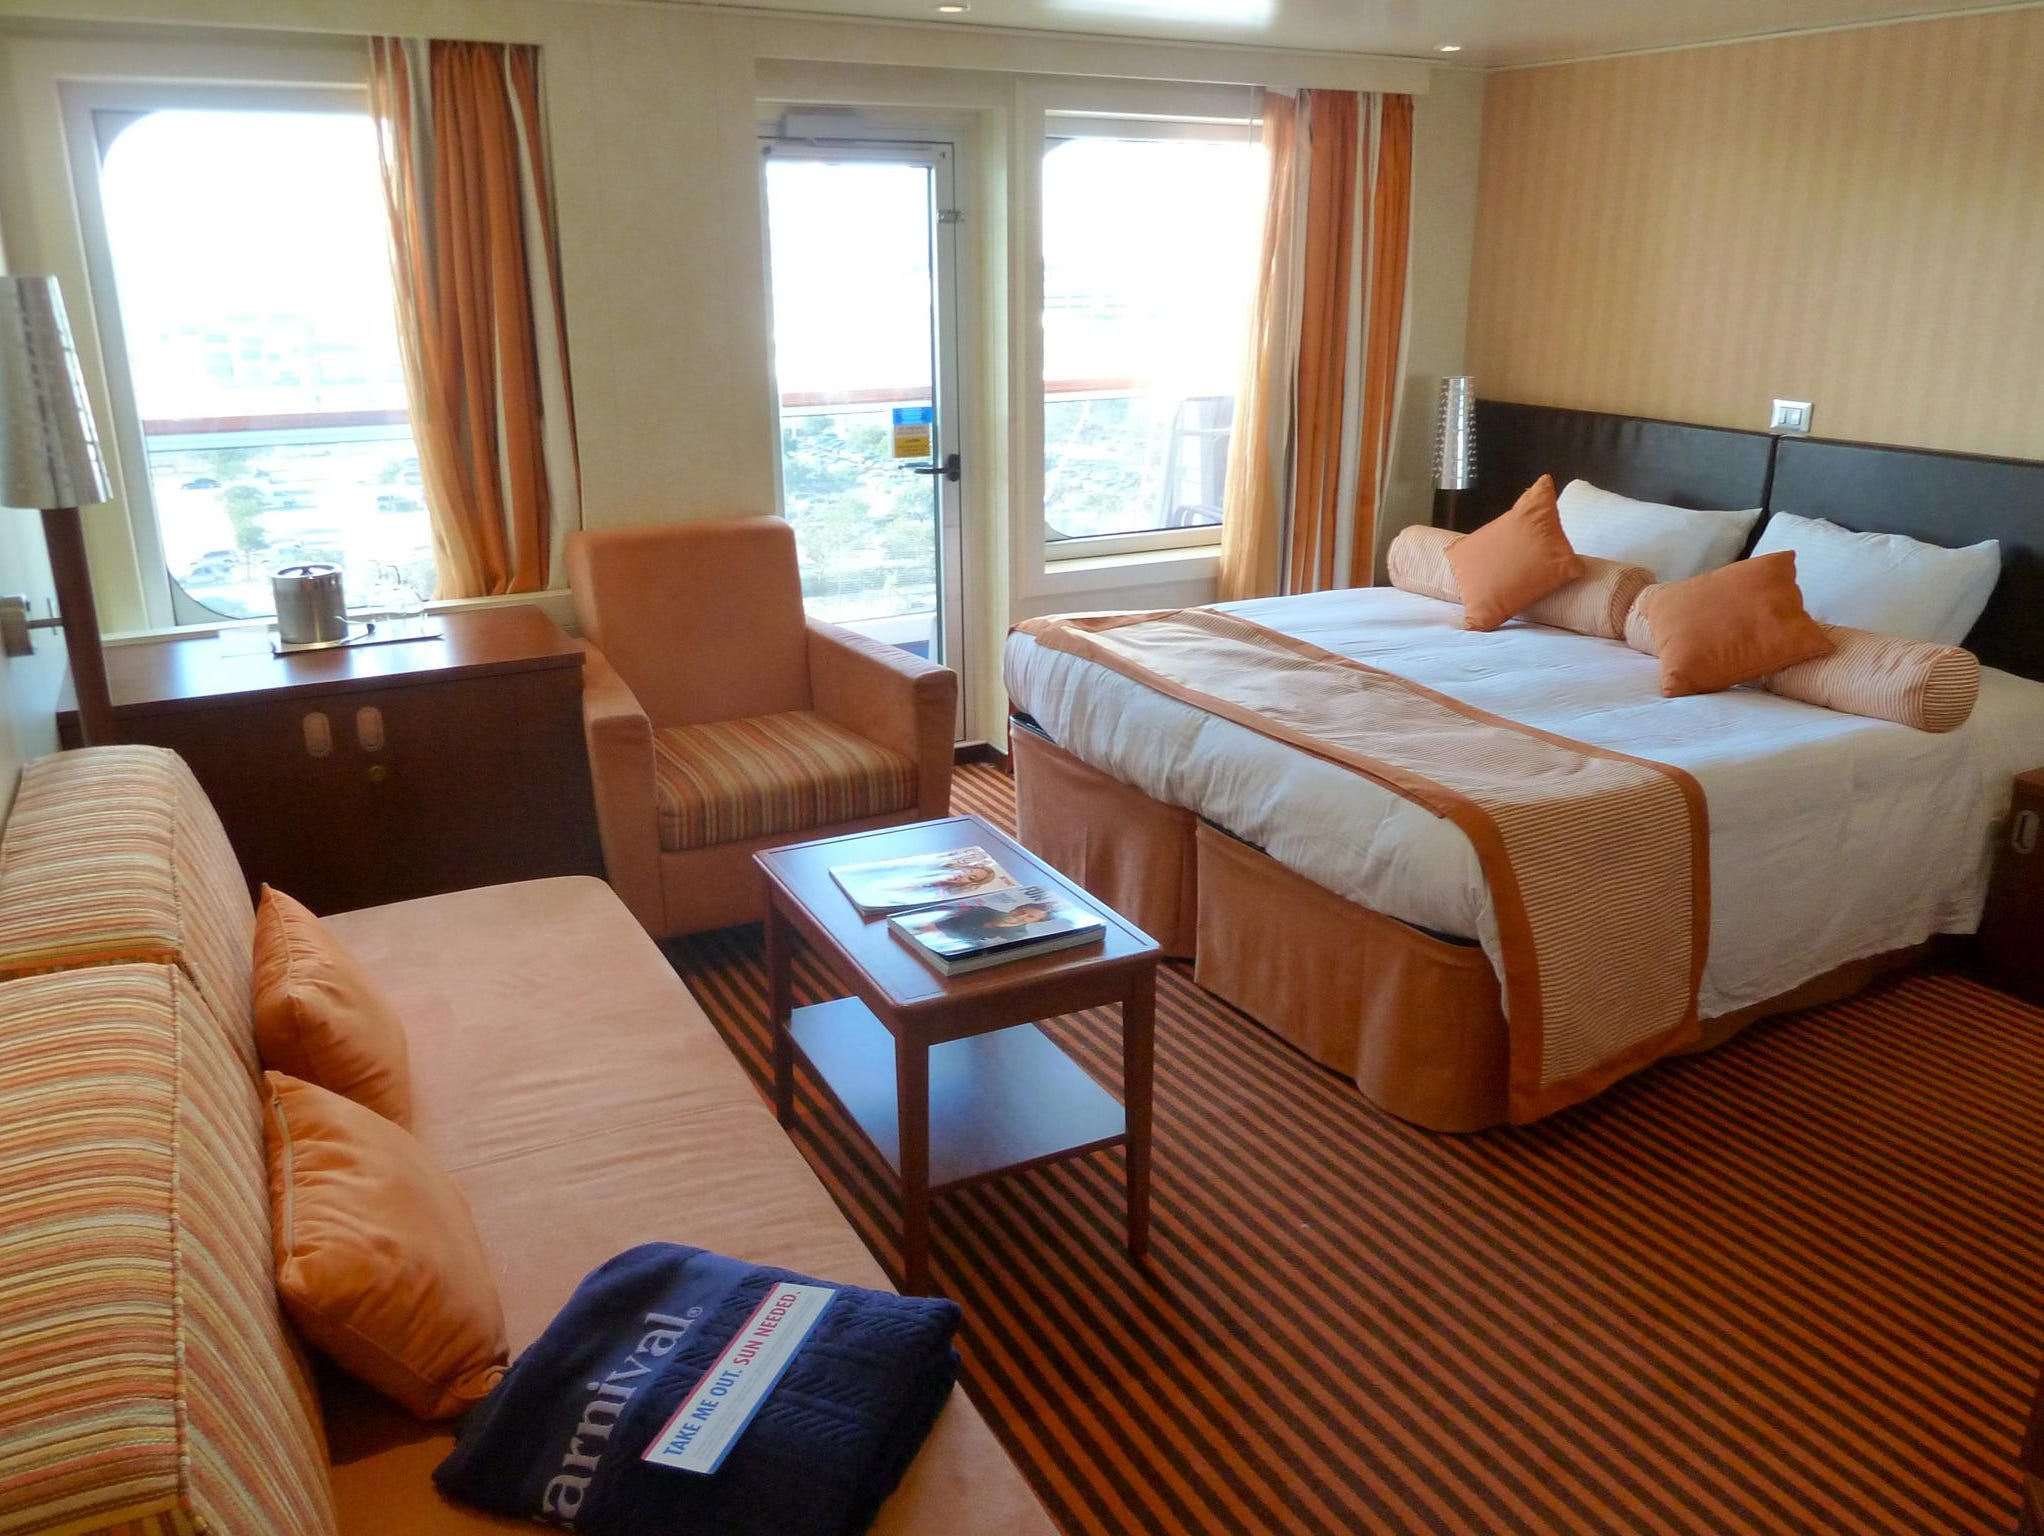 Two Junior Suites on forward Deck 9 are slightly smaller but similarly configured to the Grand Suites with a comfortable combined sitting area and bedroom.